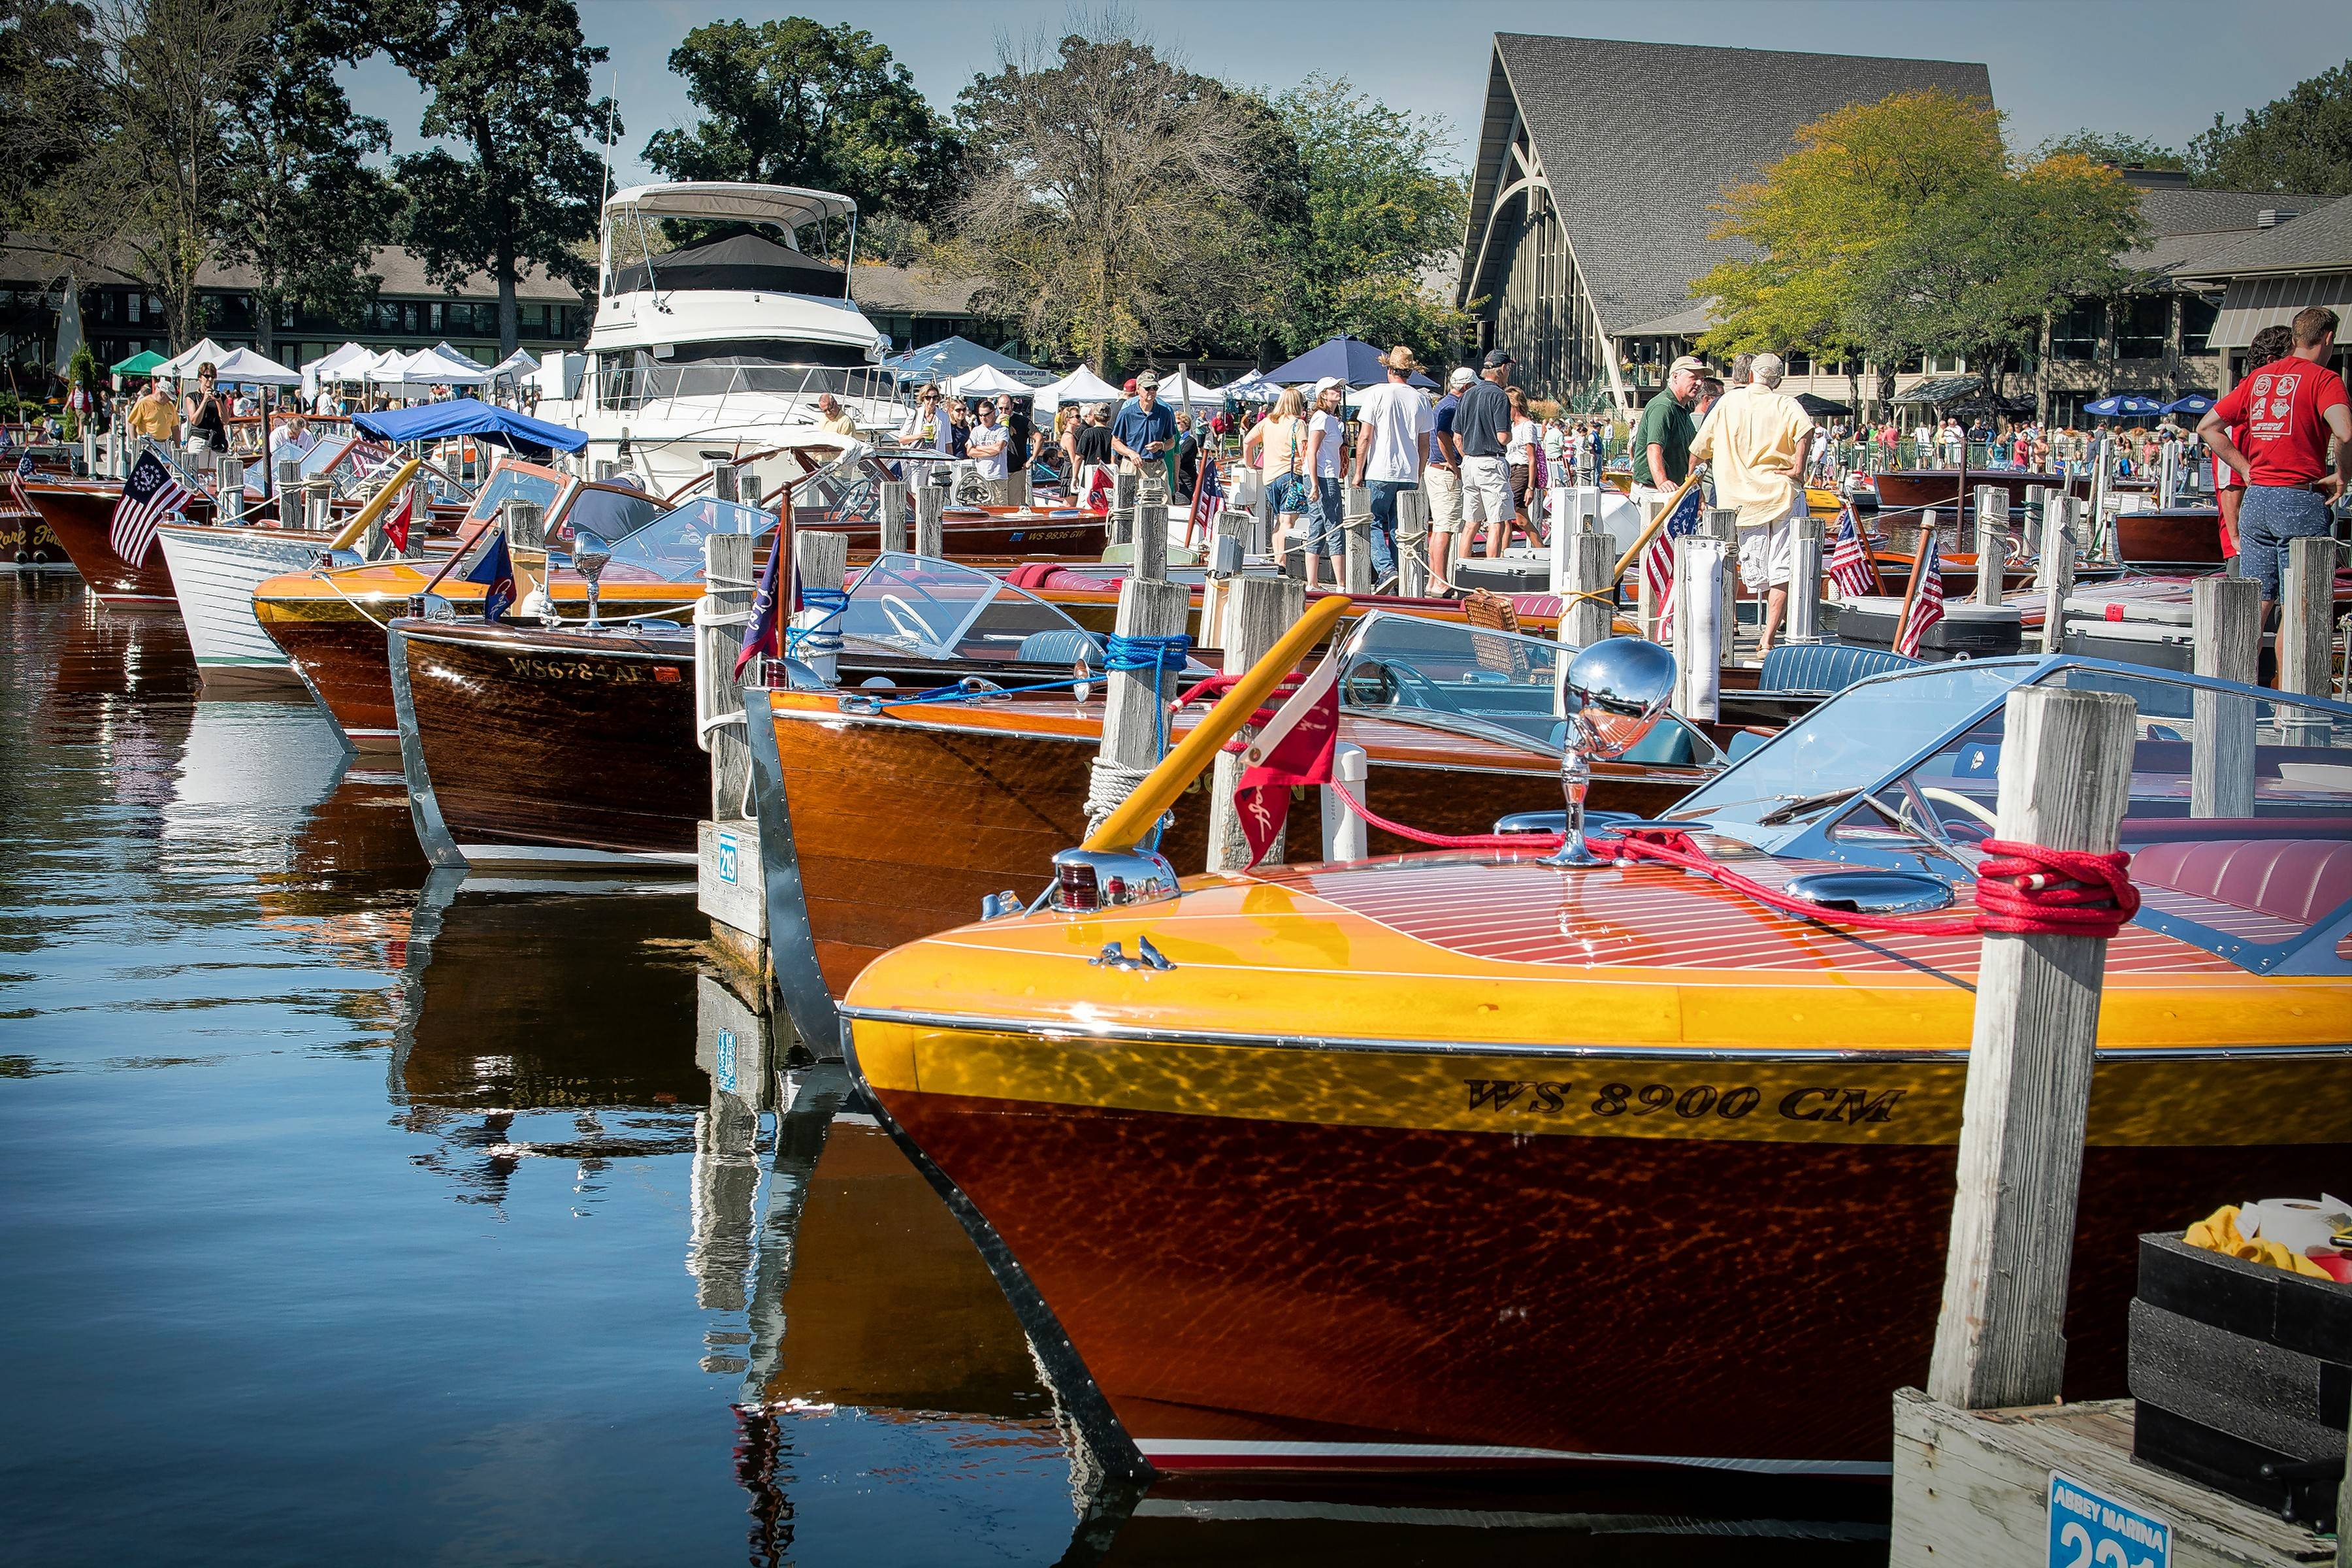 More than 120 vintage boats and their owners showed up for the 2015 Geneva Lakes Antique and Classic Boat Show.